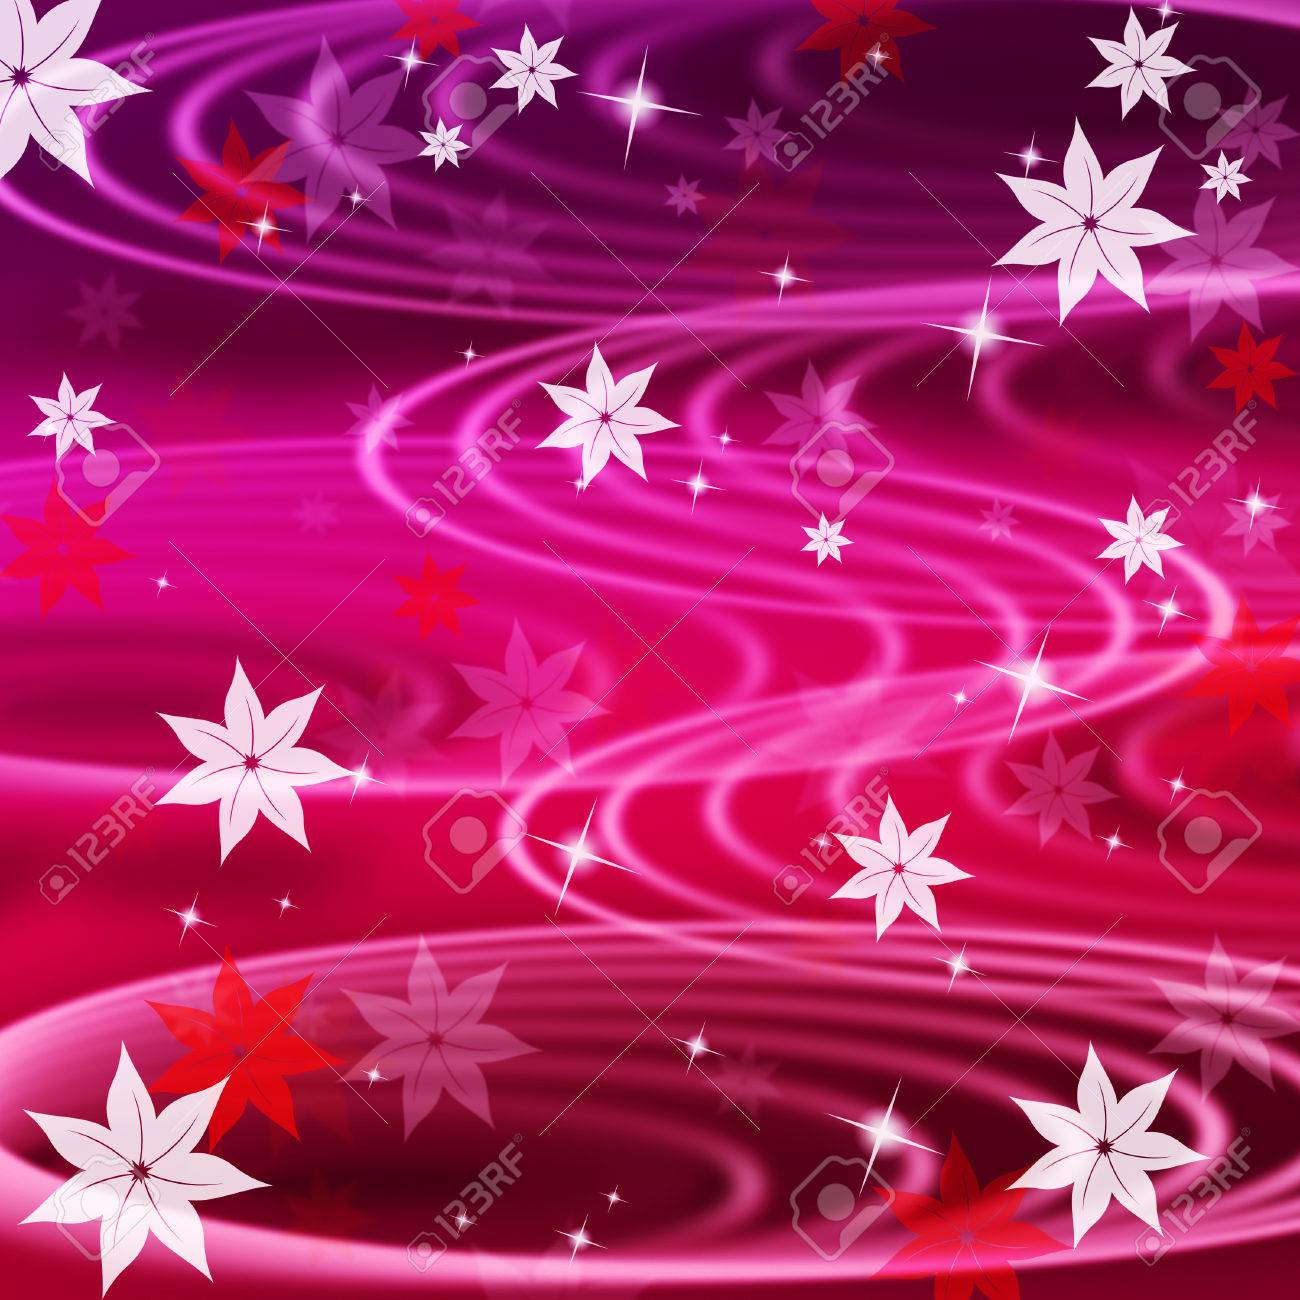 Pink Rippling Background Meaning Wavy Lines And Flowers Stock Photo